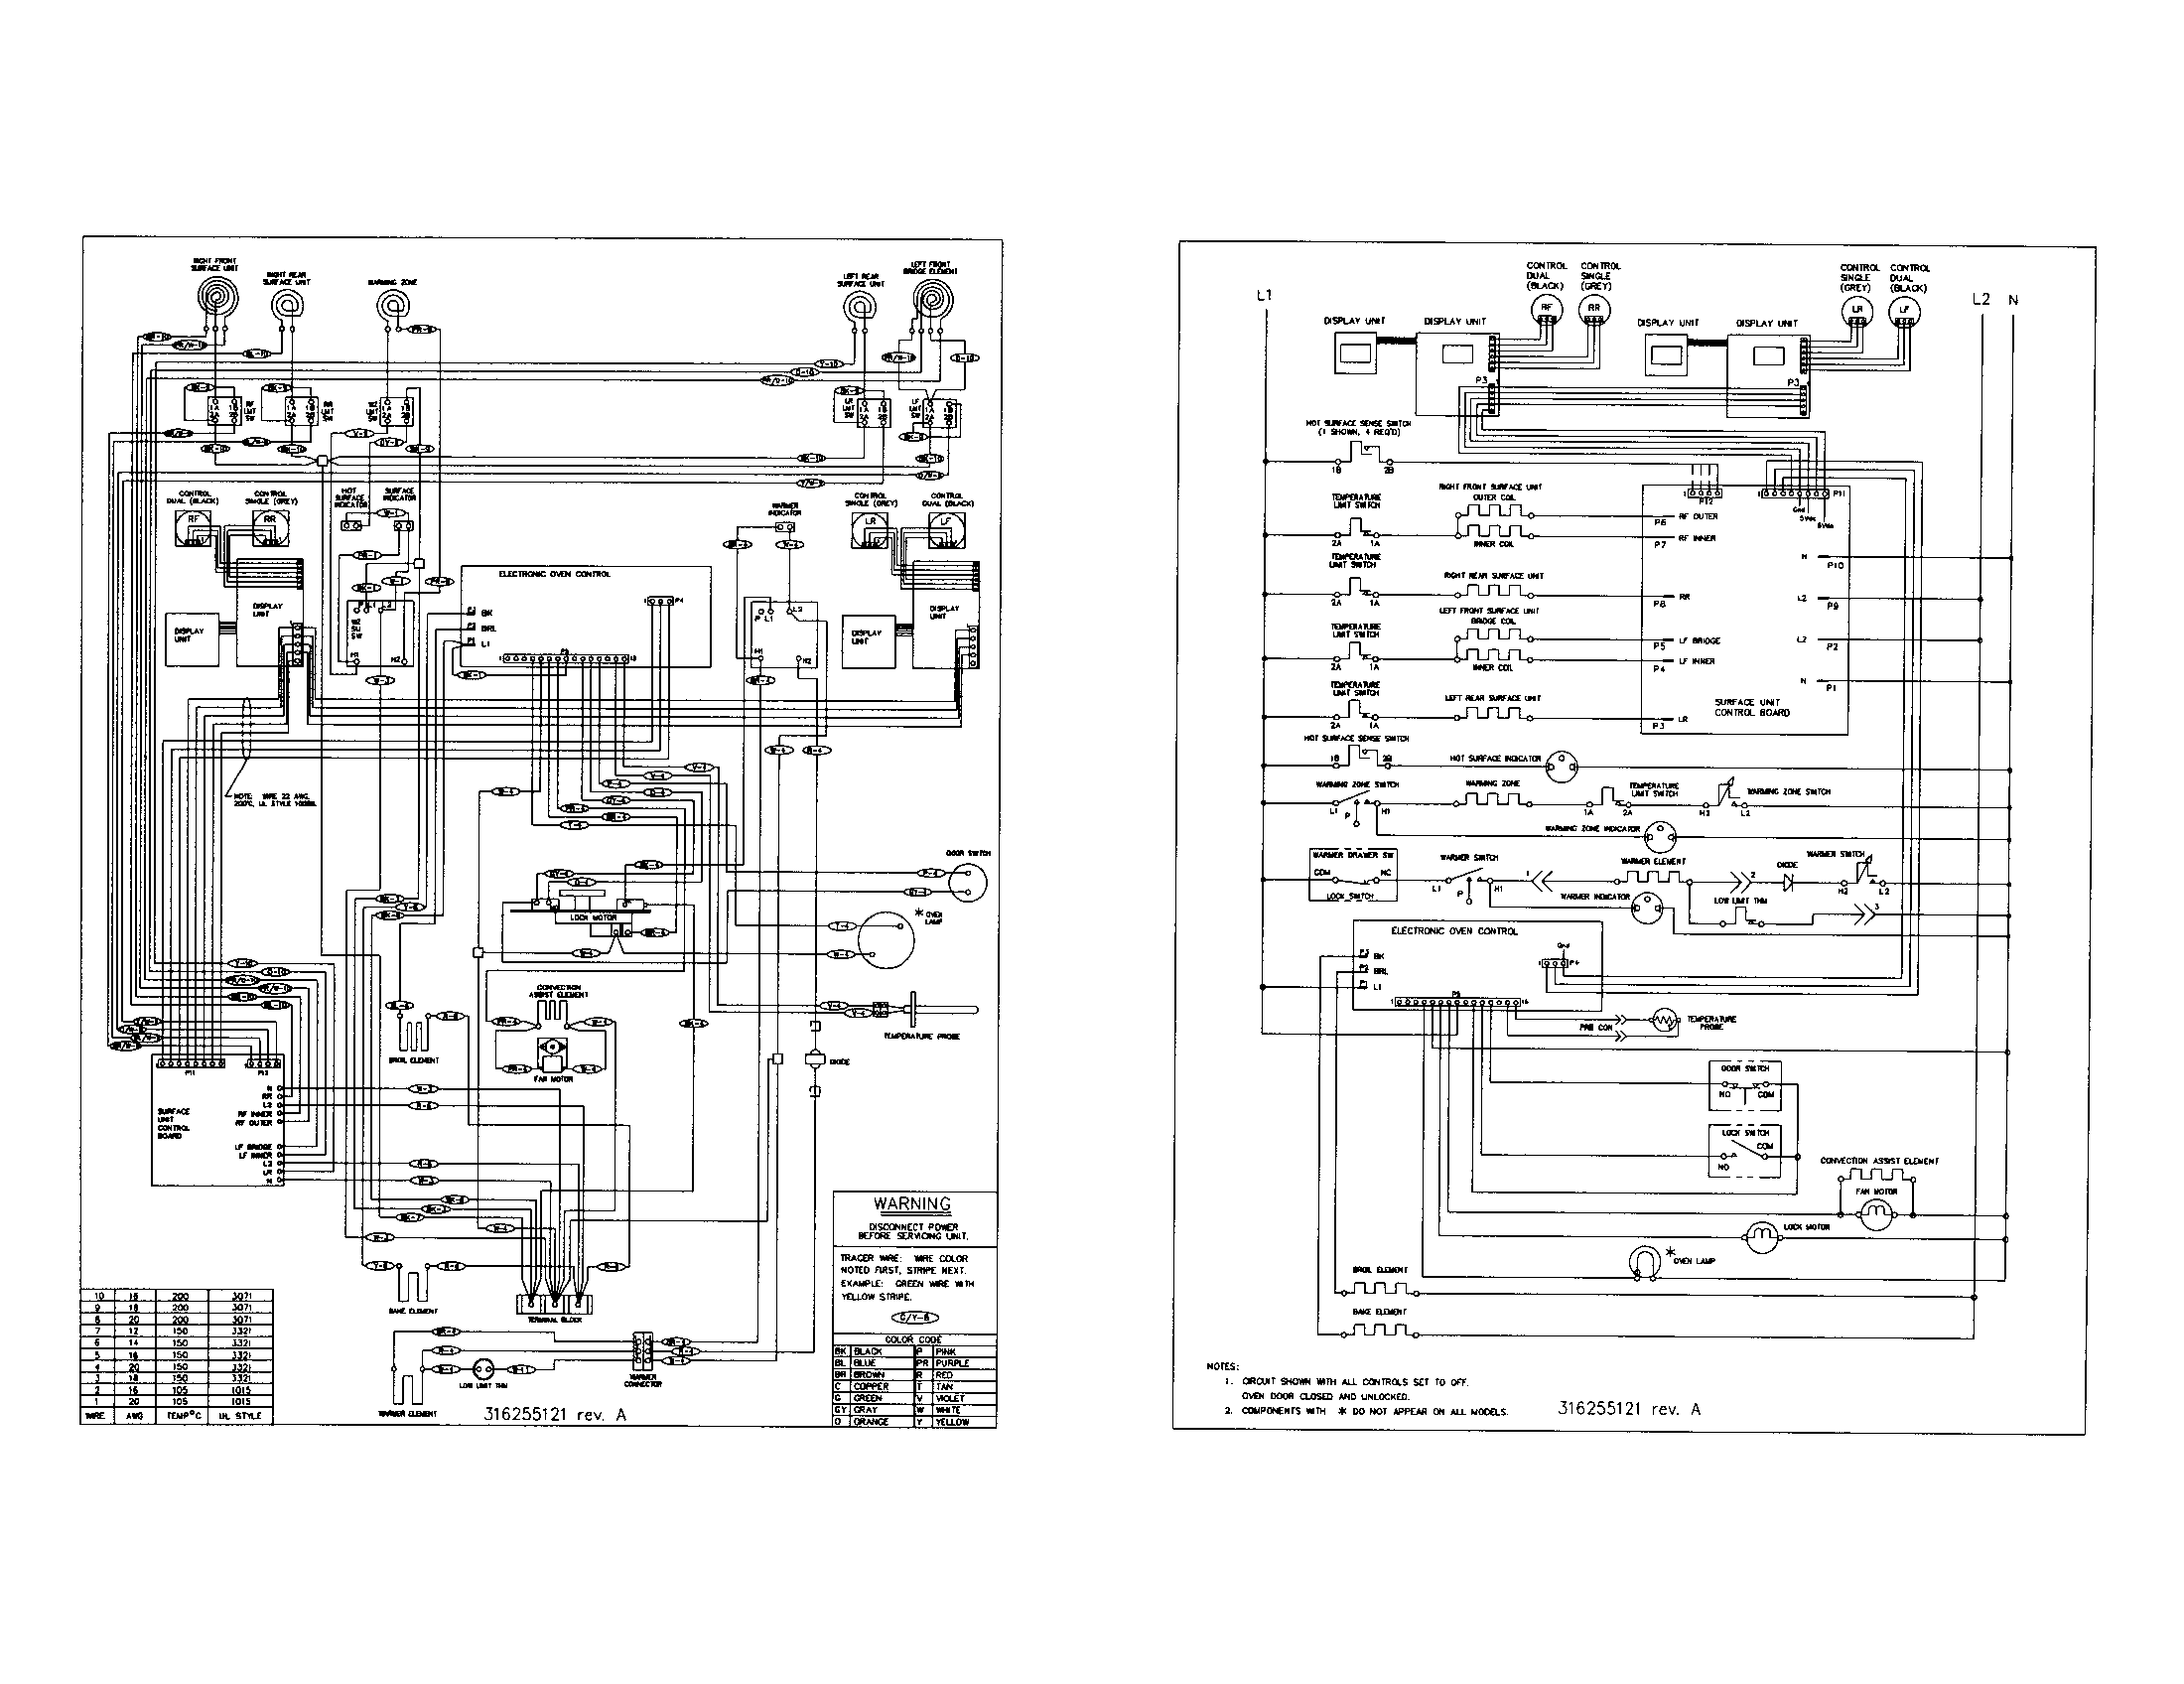 kitchenaid refrigerator wiring schematic